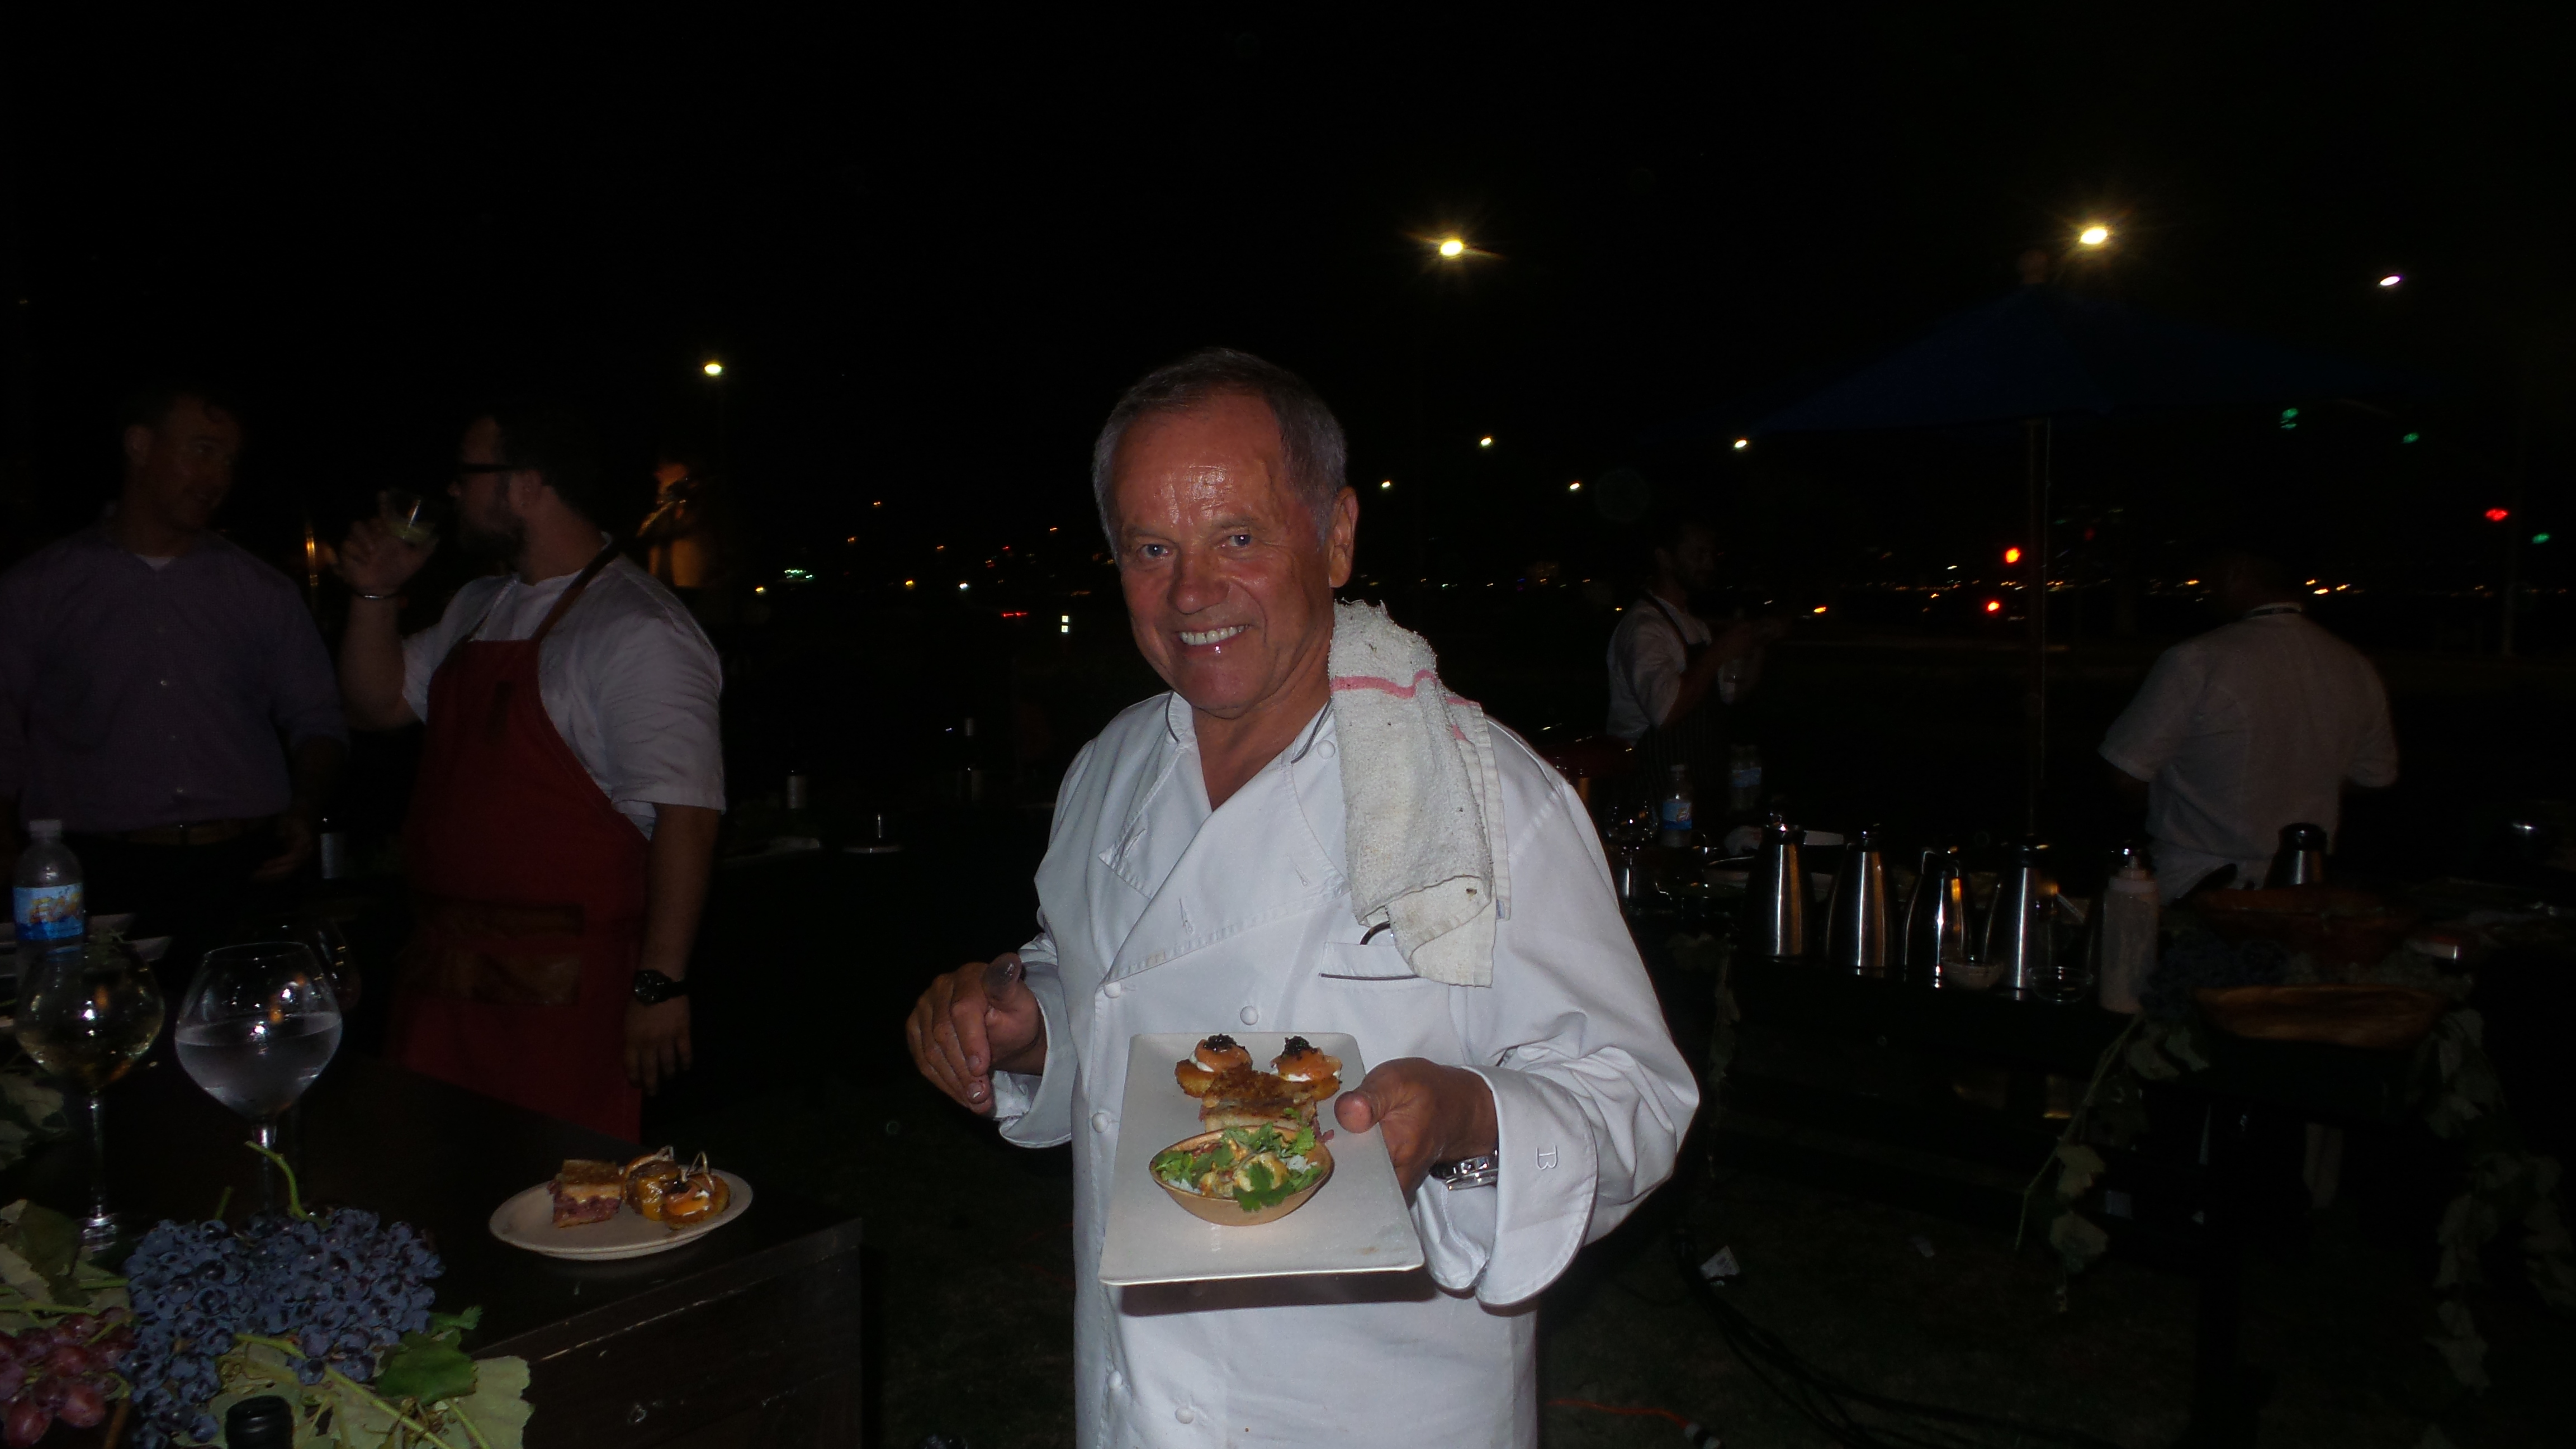 Wolfgang Puck prepared appetizers to paid with his four new varietals featured at the event